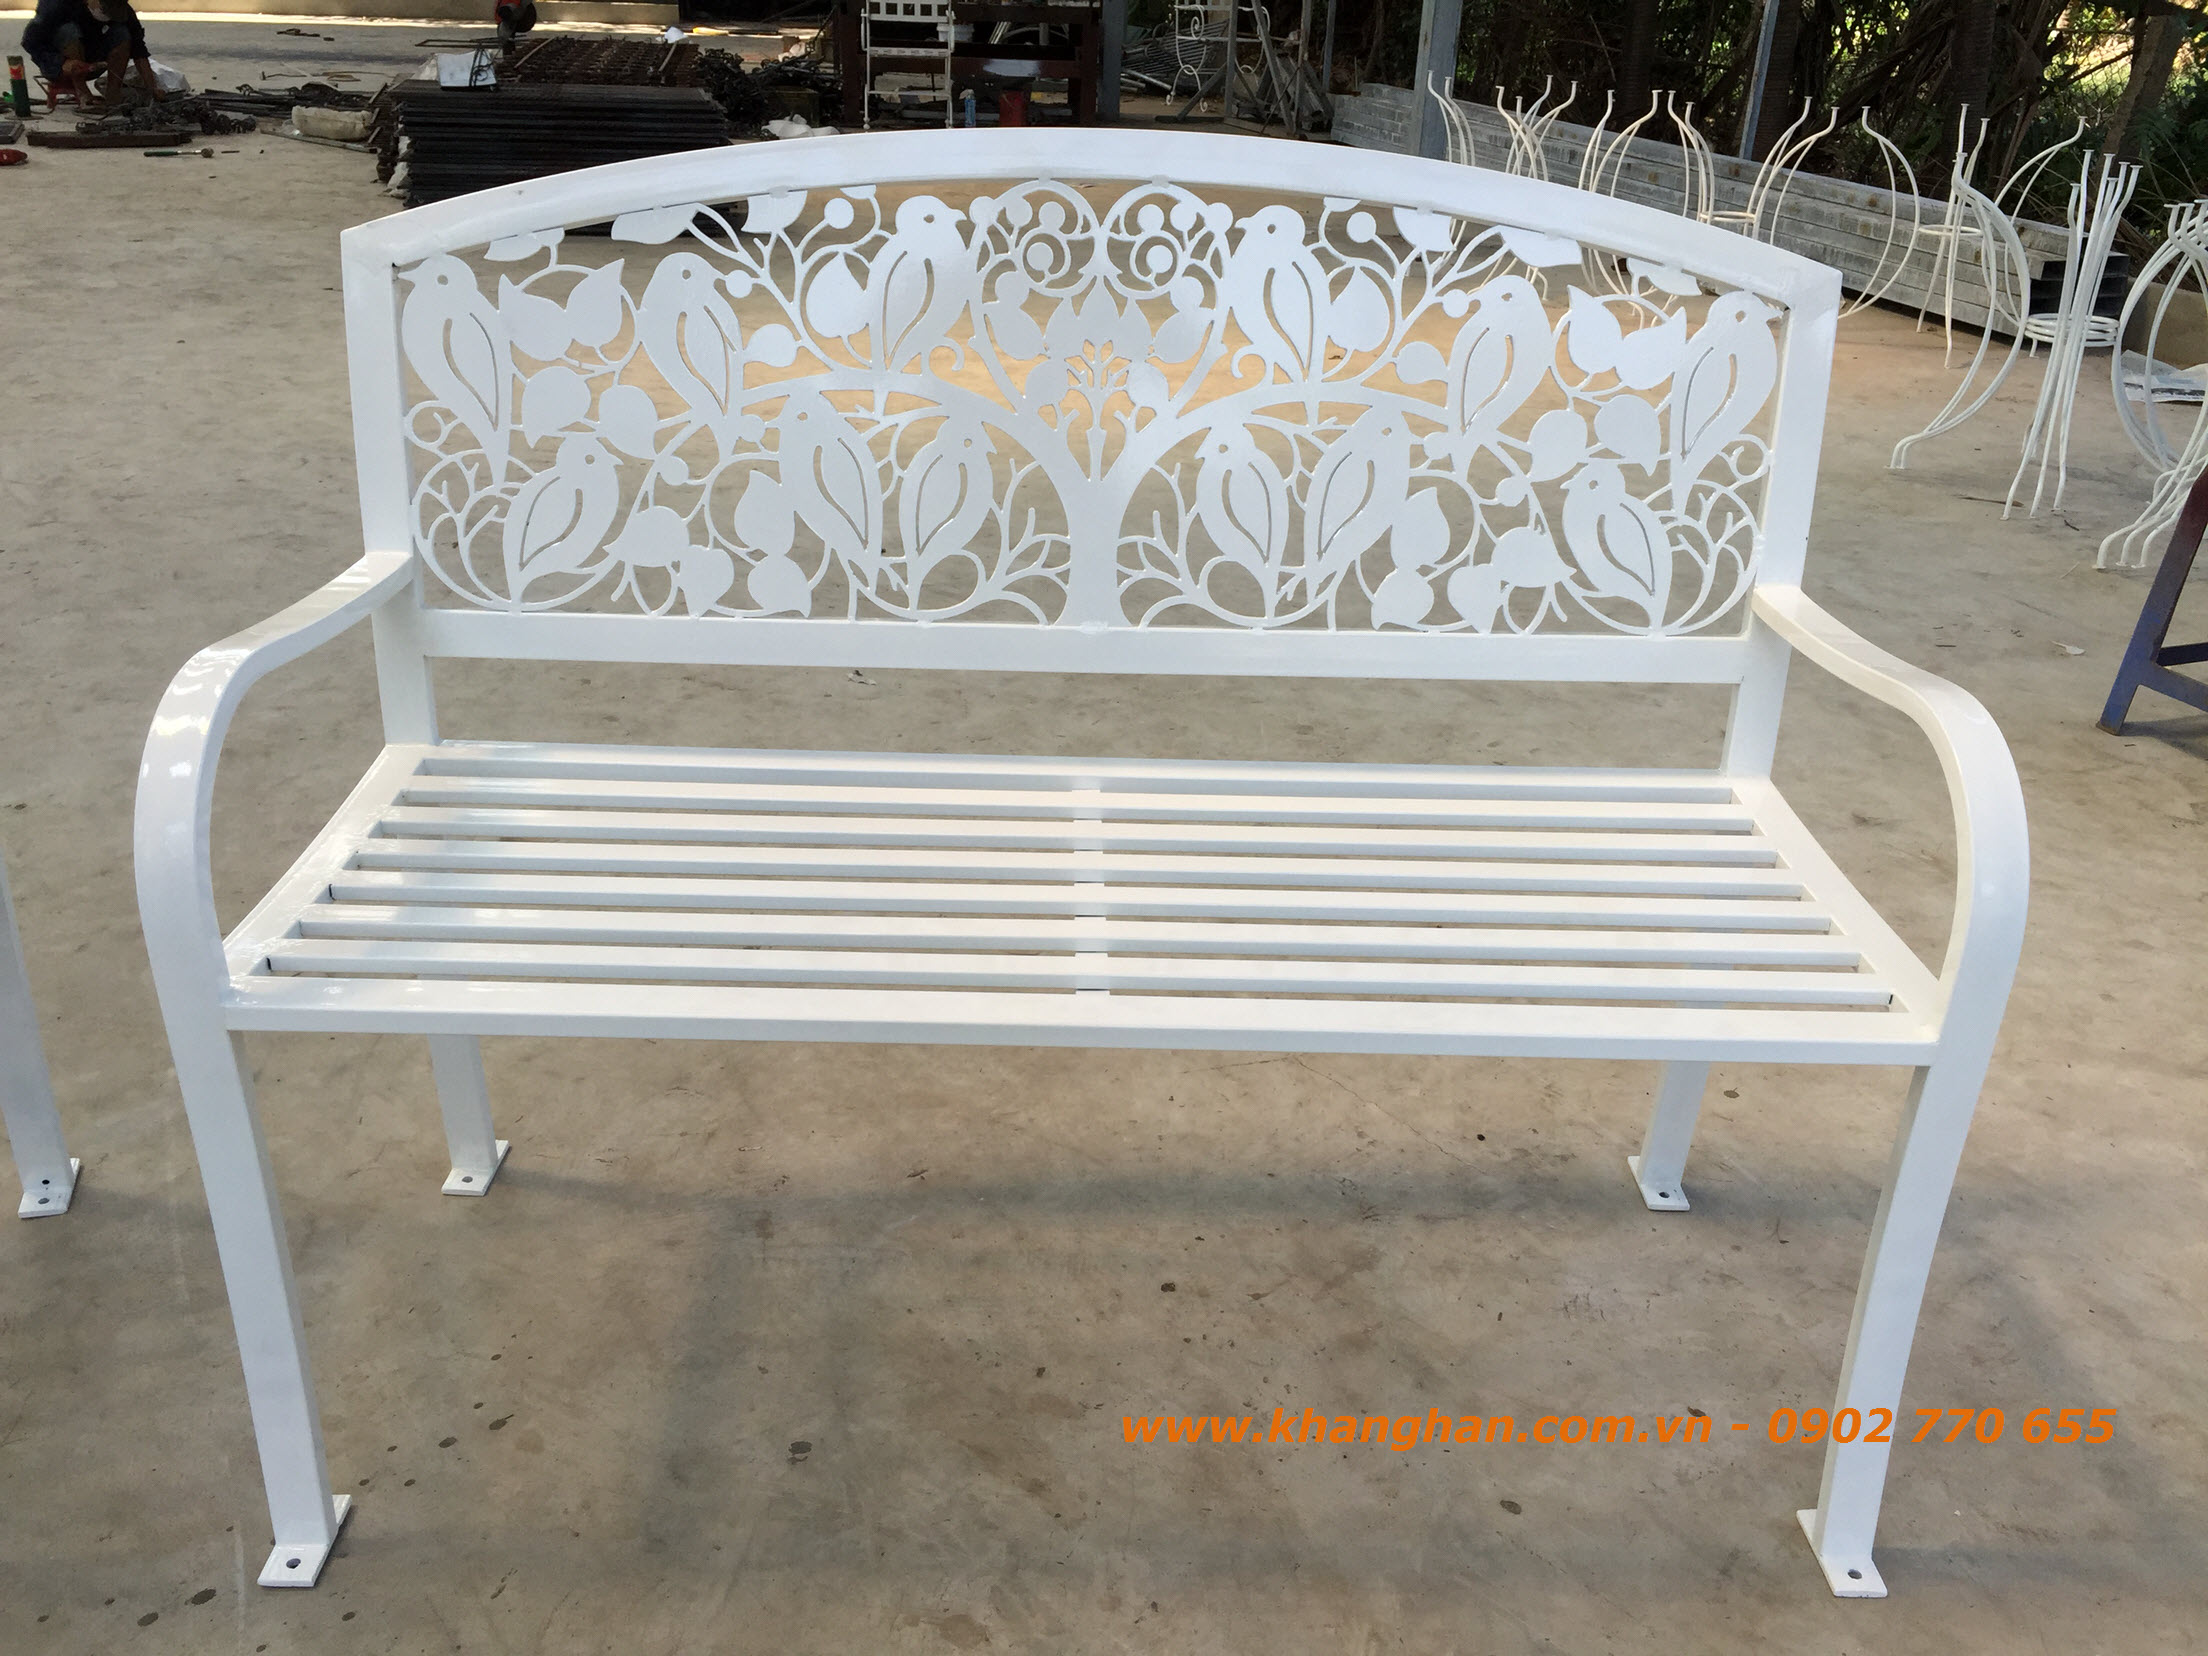 concept wrought chairs chair outdoor designs garden patio bench iron pretty graphics of